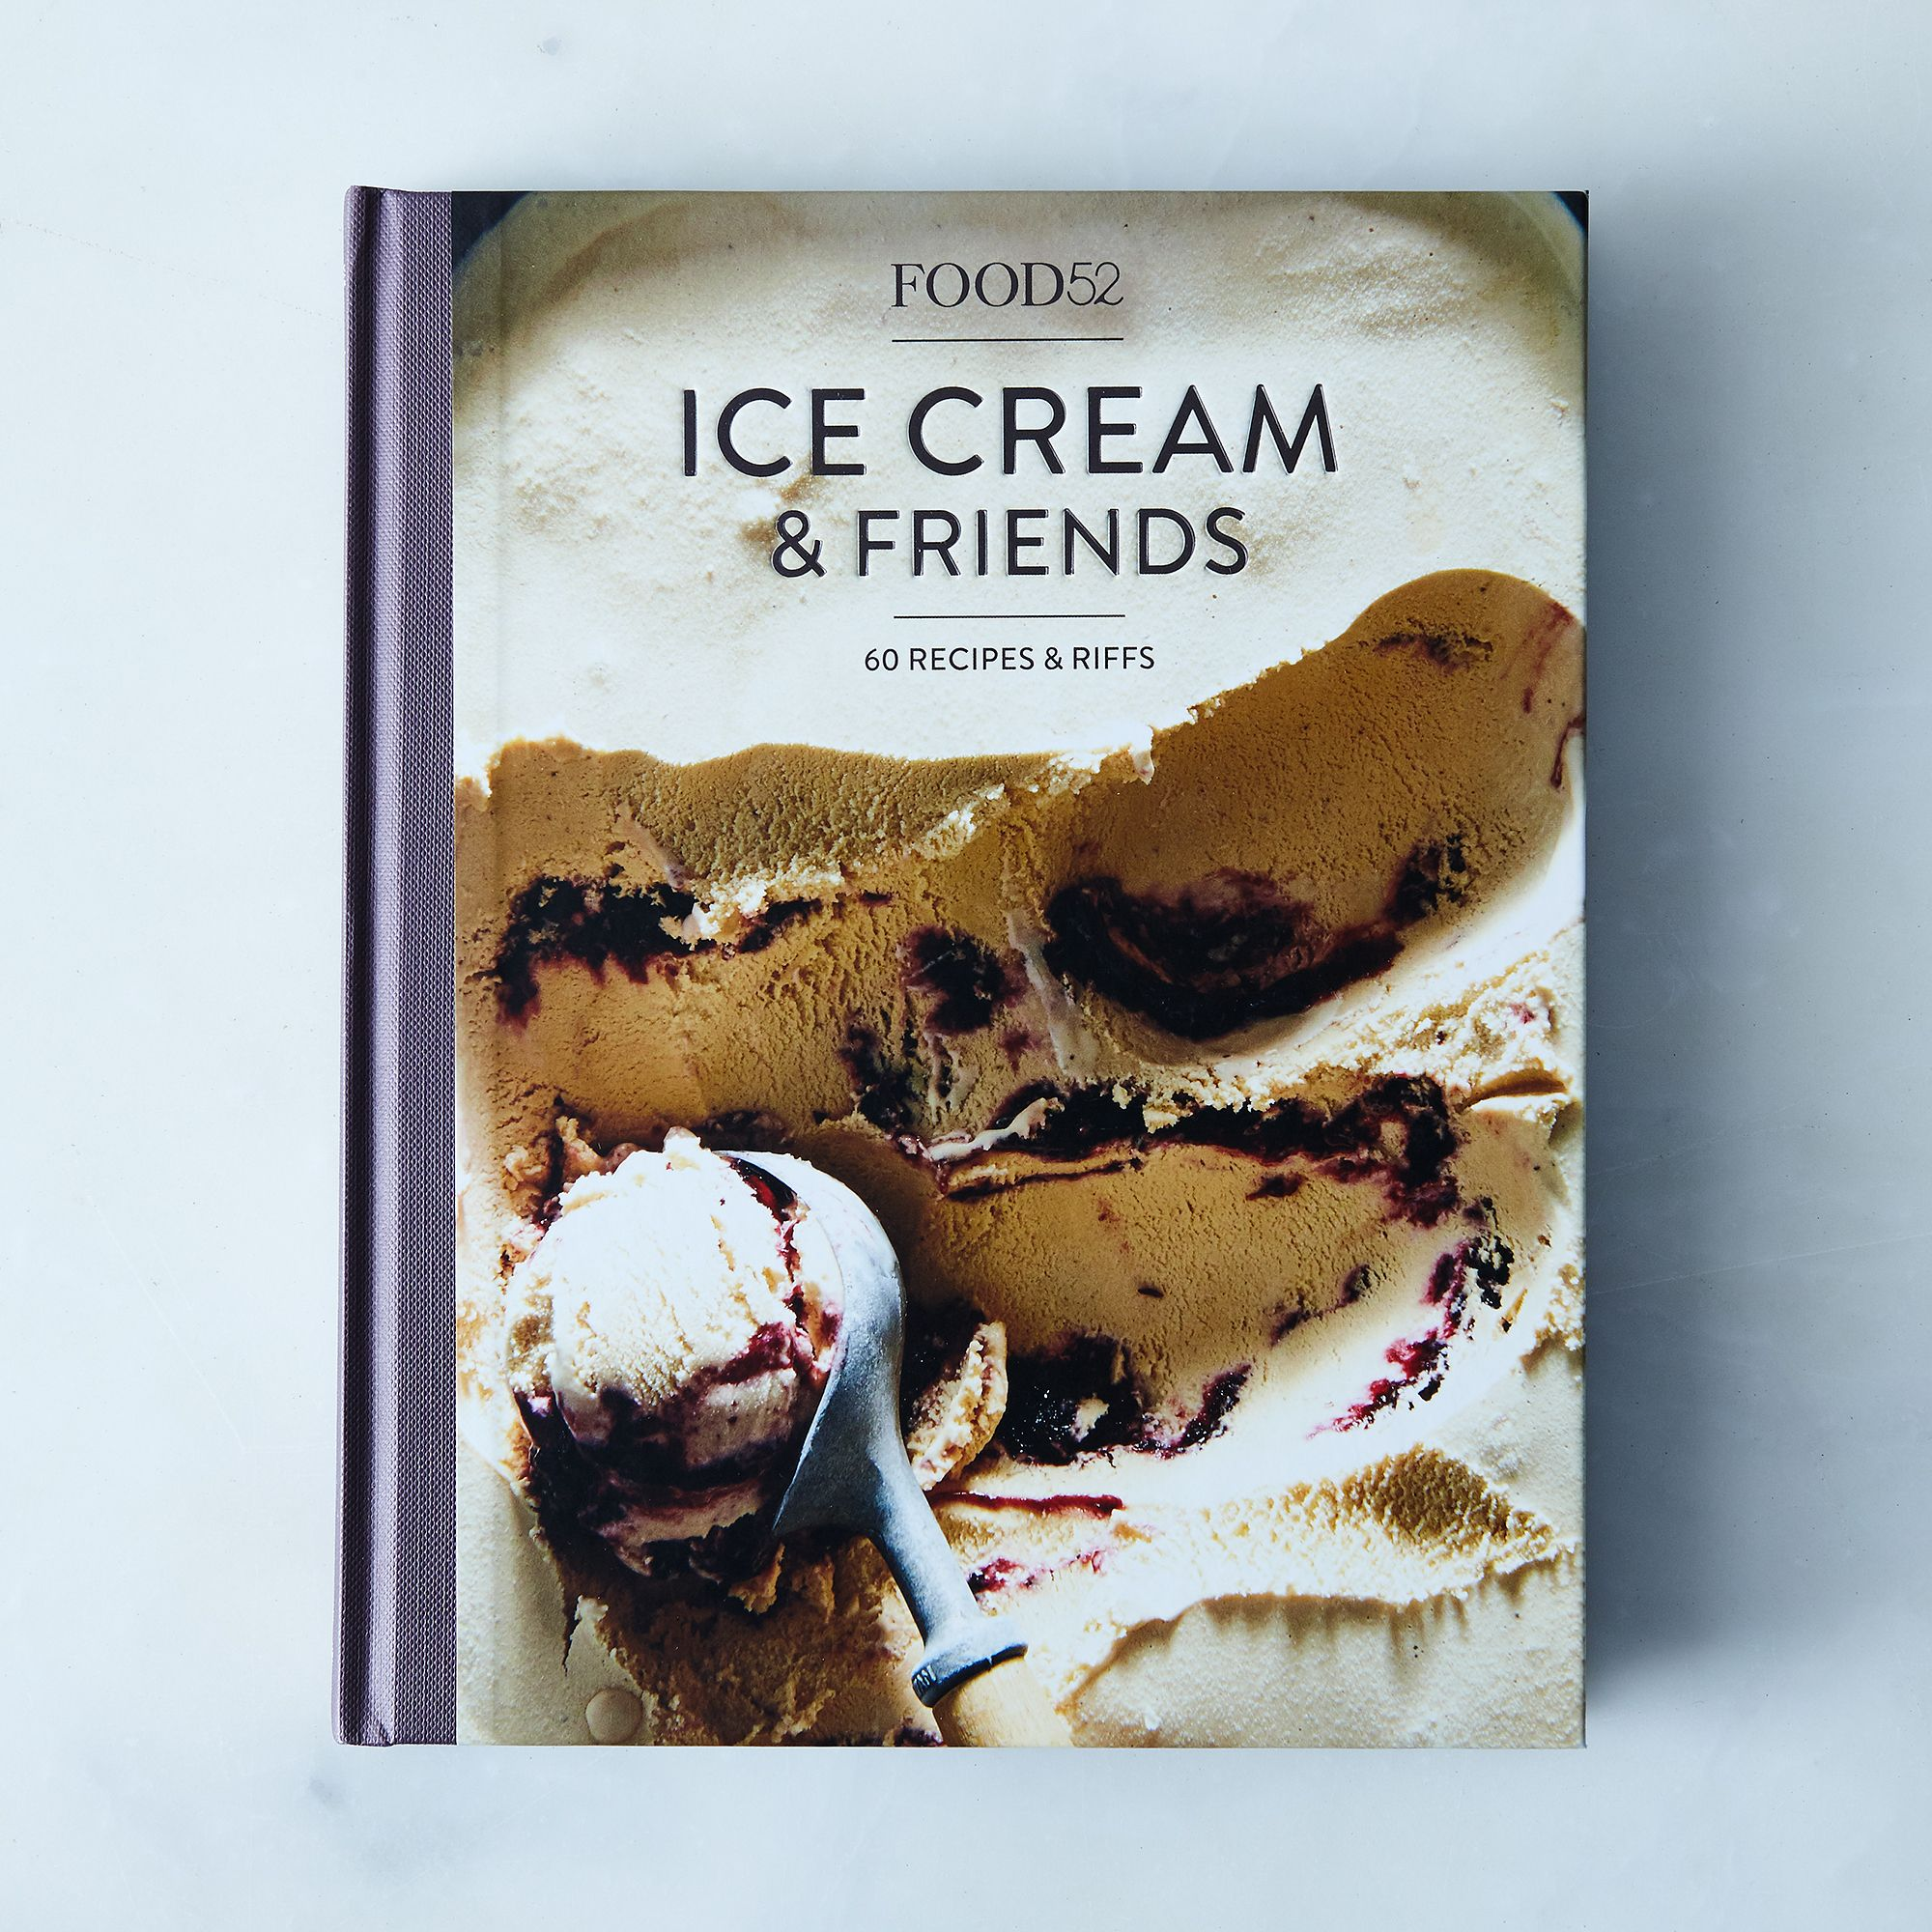 72f8156d 290c 443f 9f56 9db8fffab5dc  2017 0217 ten speed press food52 ice cream and friends cookbook silo rocky luten 003